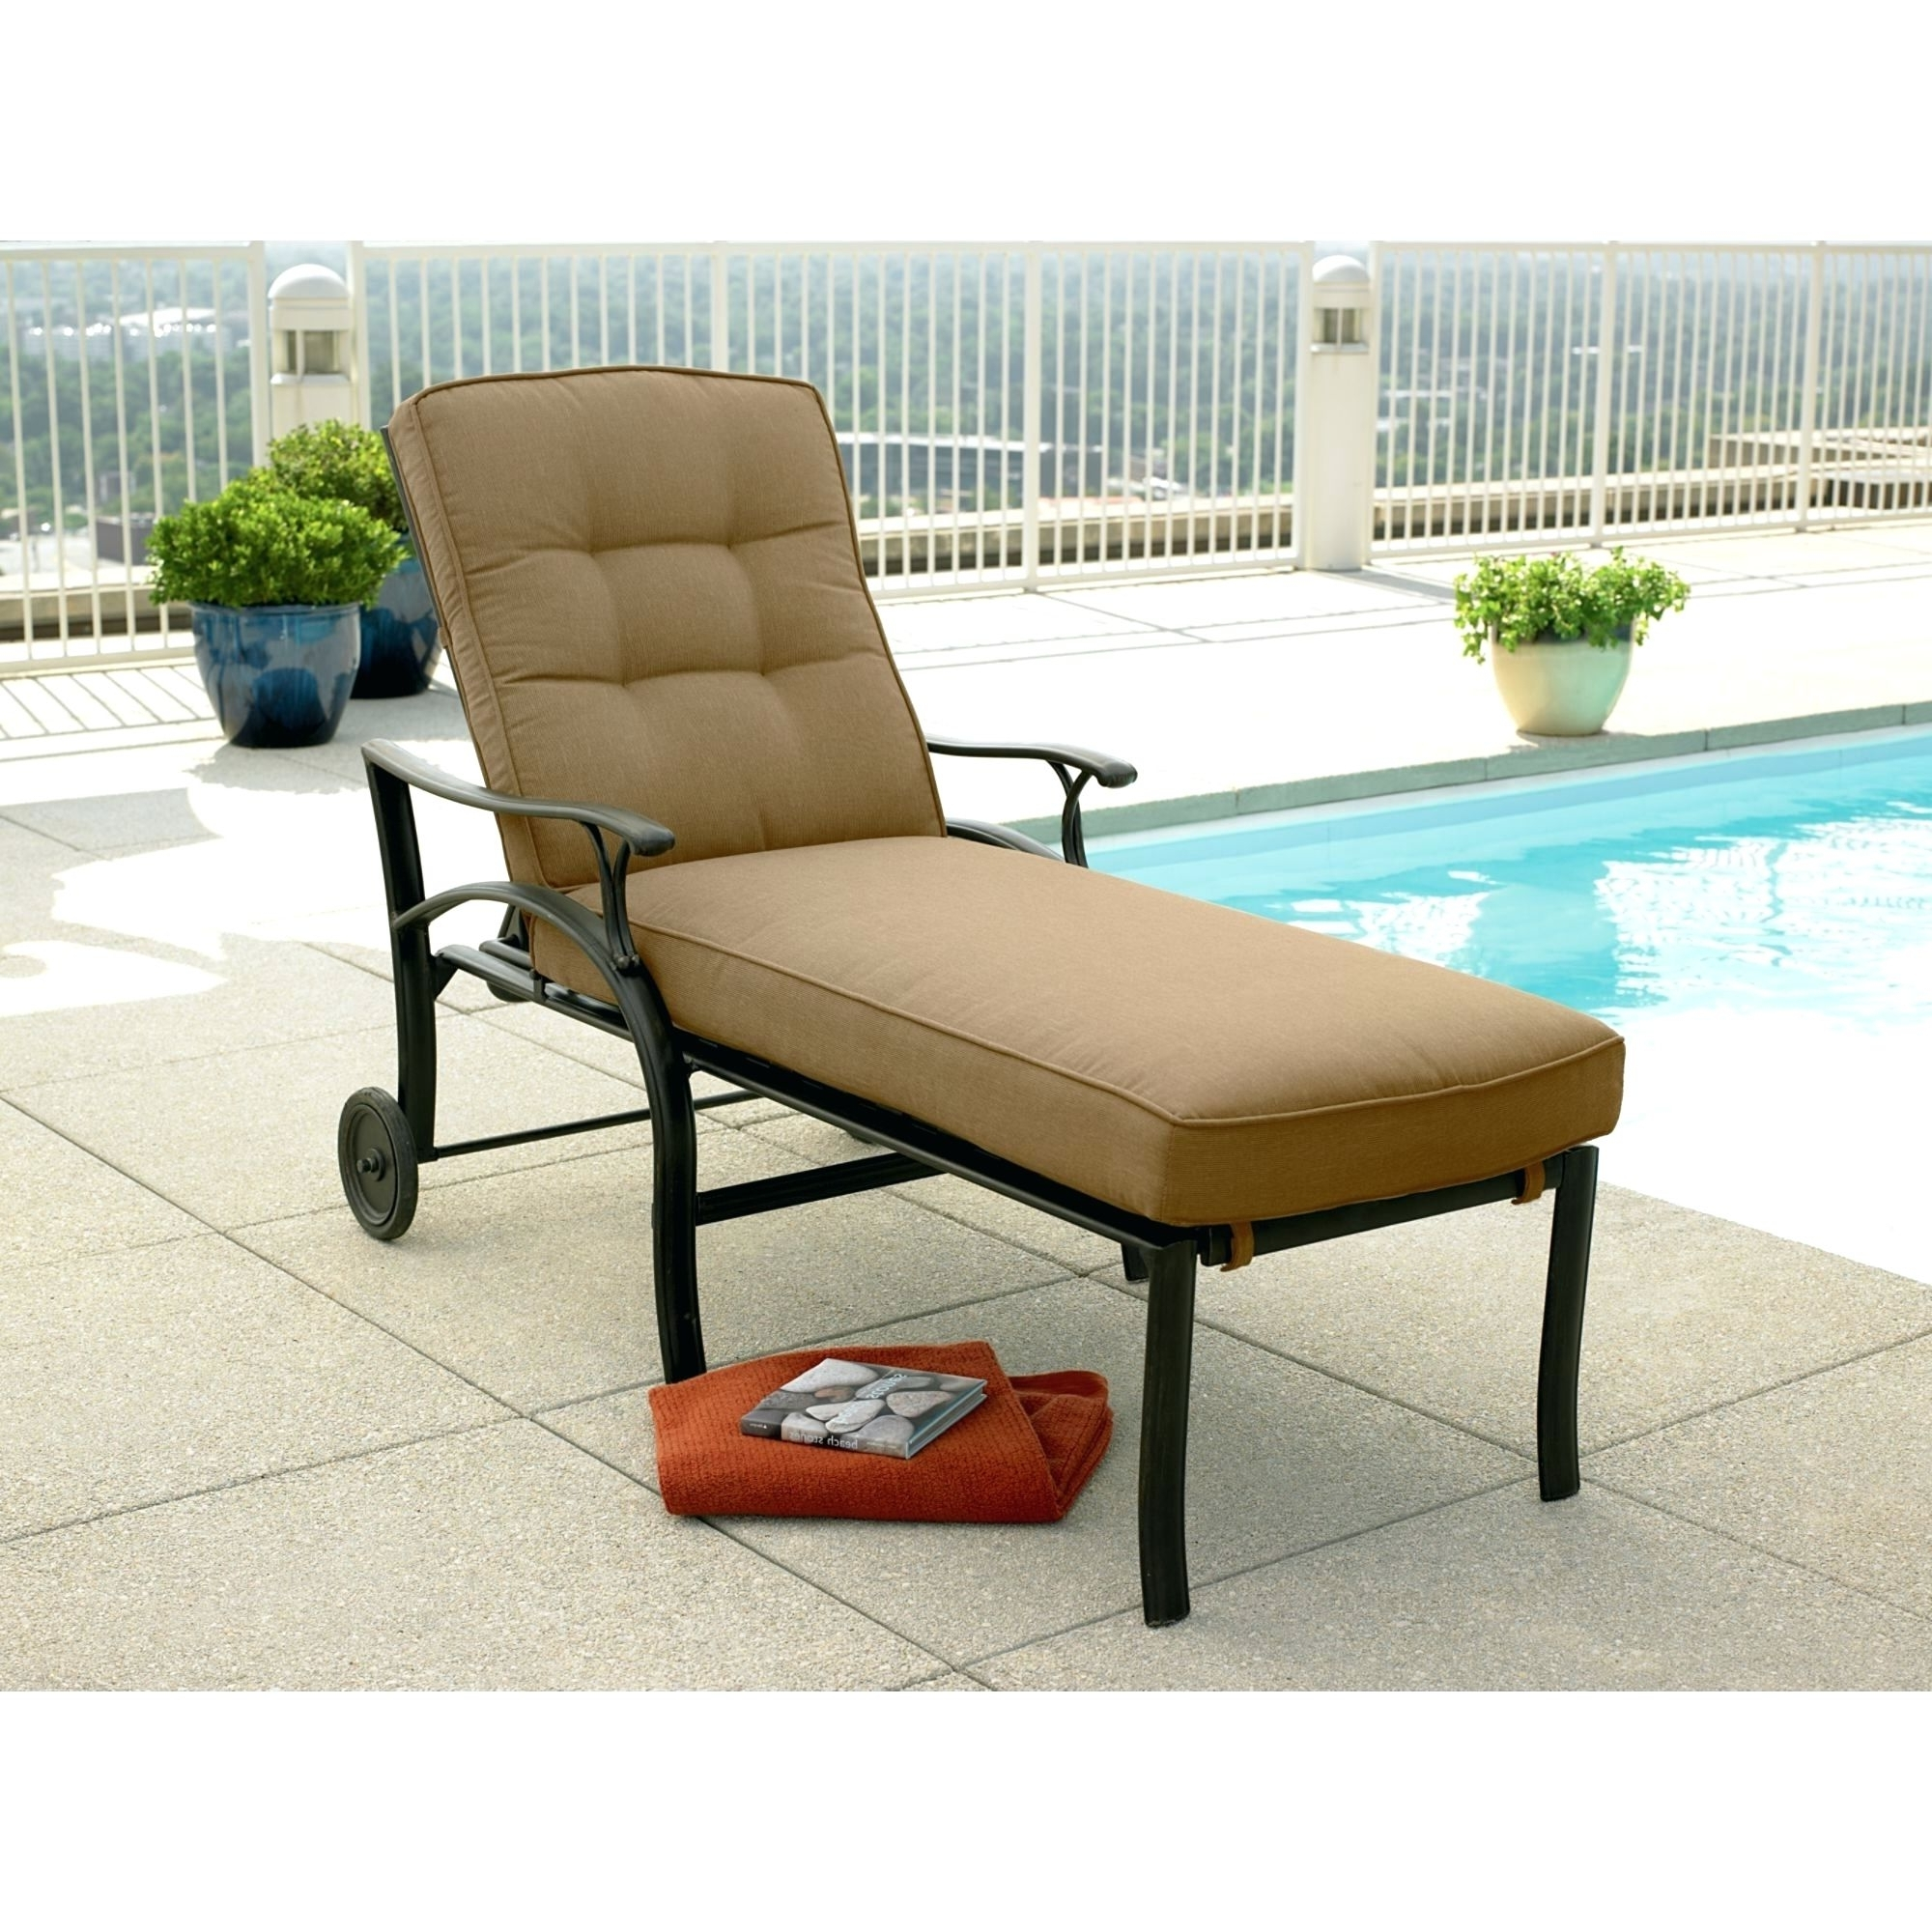 Deck Chaise Lounge Chairs Inside Popular Pool Deck Chaise Lounge Chairs • Lounge Chairs Ideas (View 2 of 15)